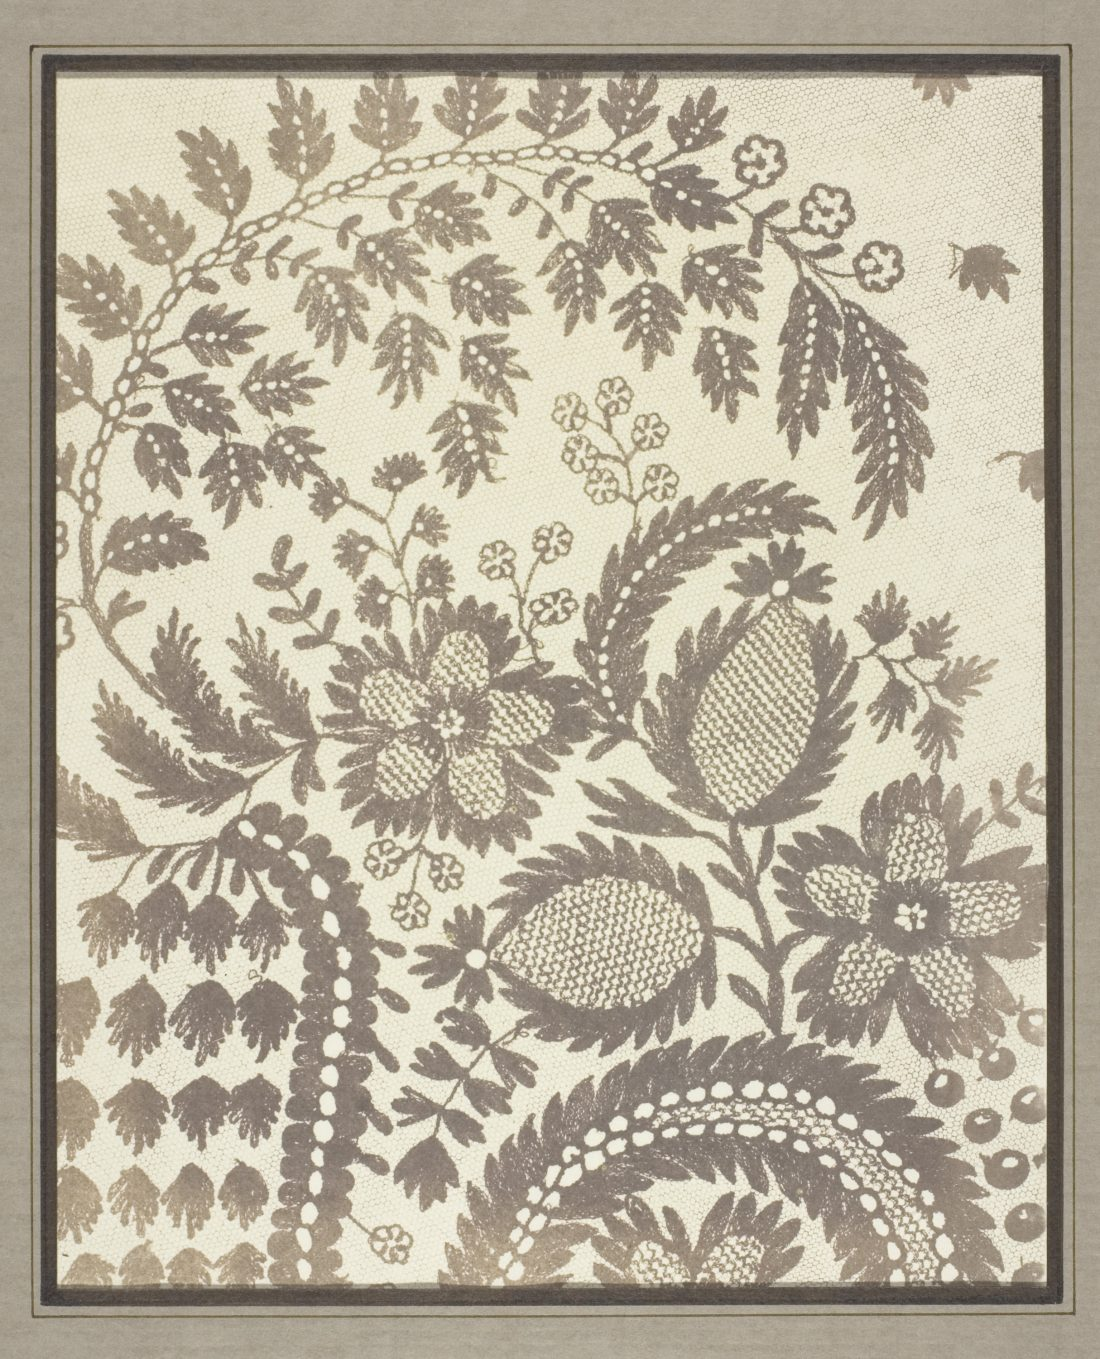 William Henry Fox Talbot, Lace, 1844/45